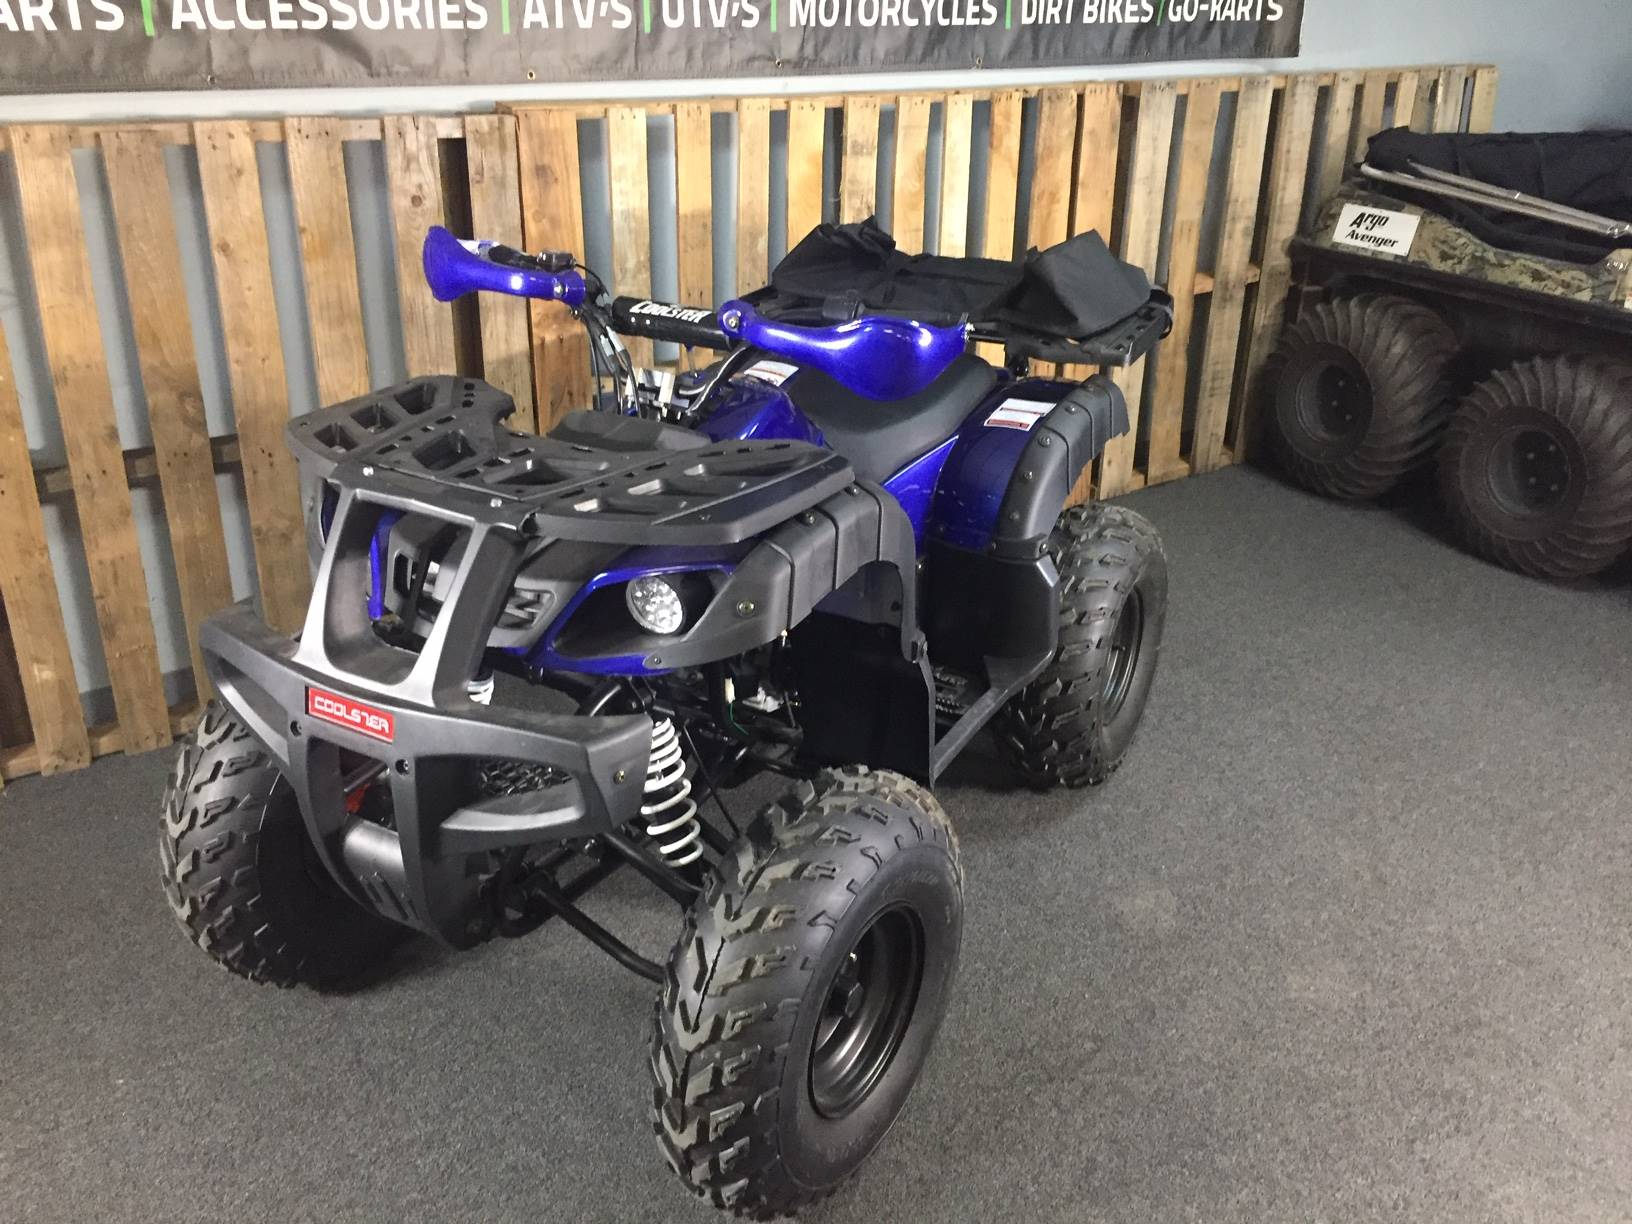 2019 Coolster ATV-3150DX-4 in Knoxville, Tennessee - Photo 2